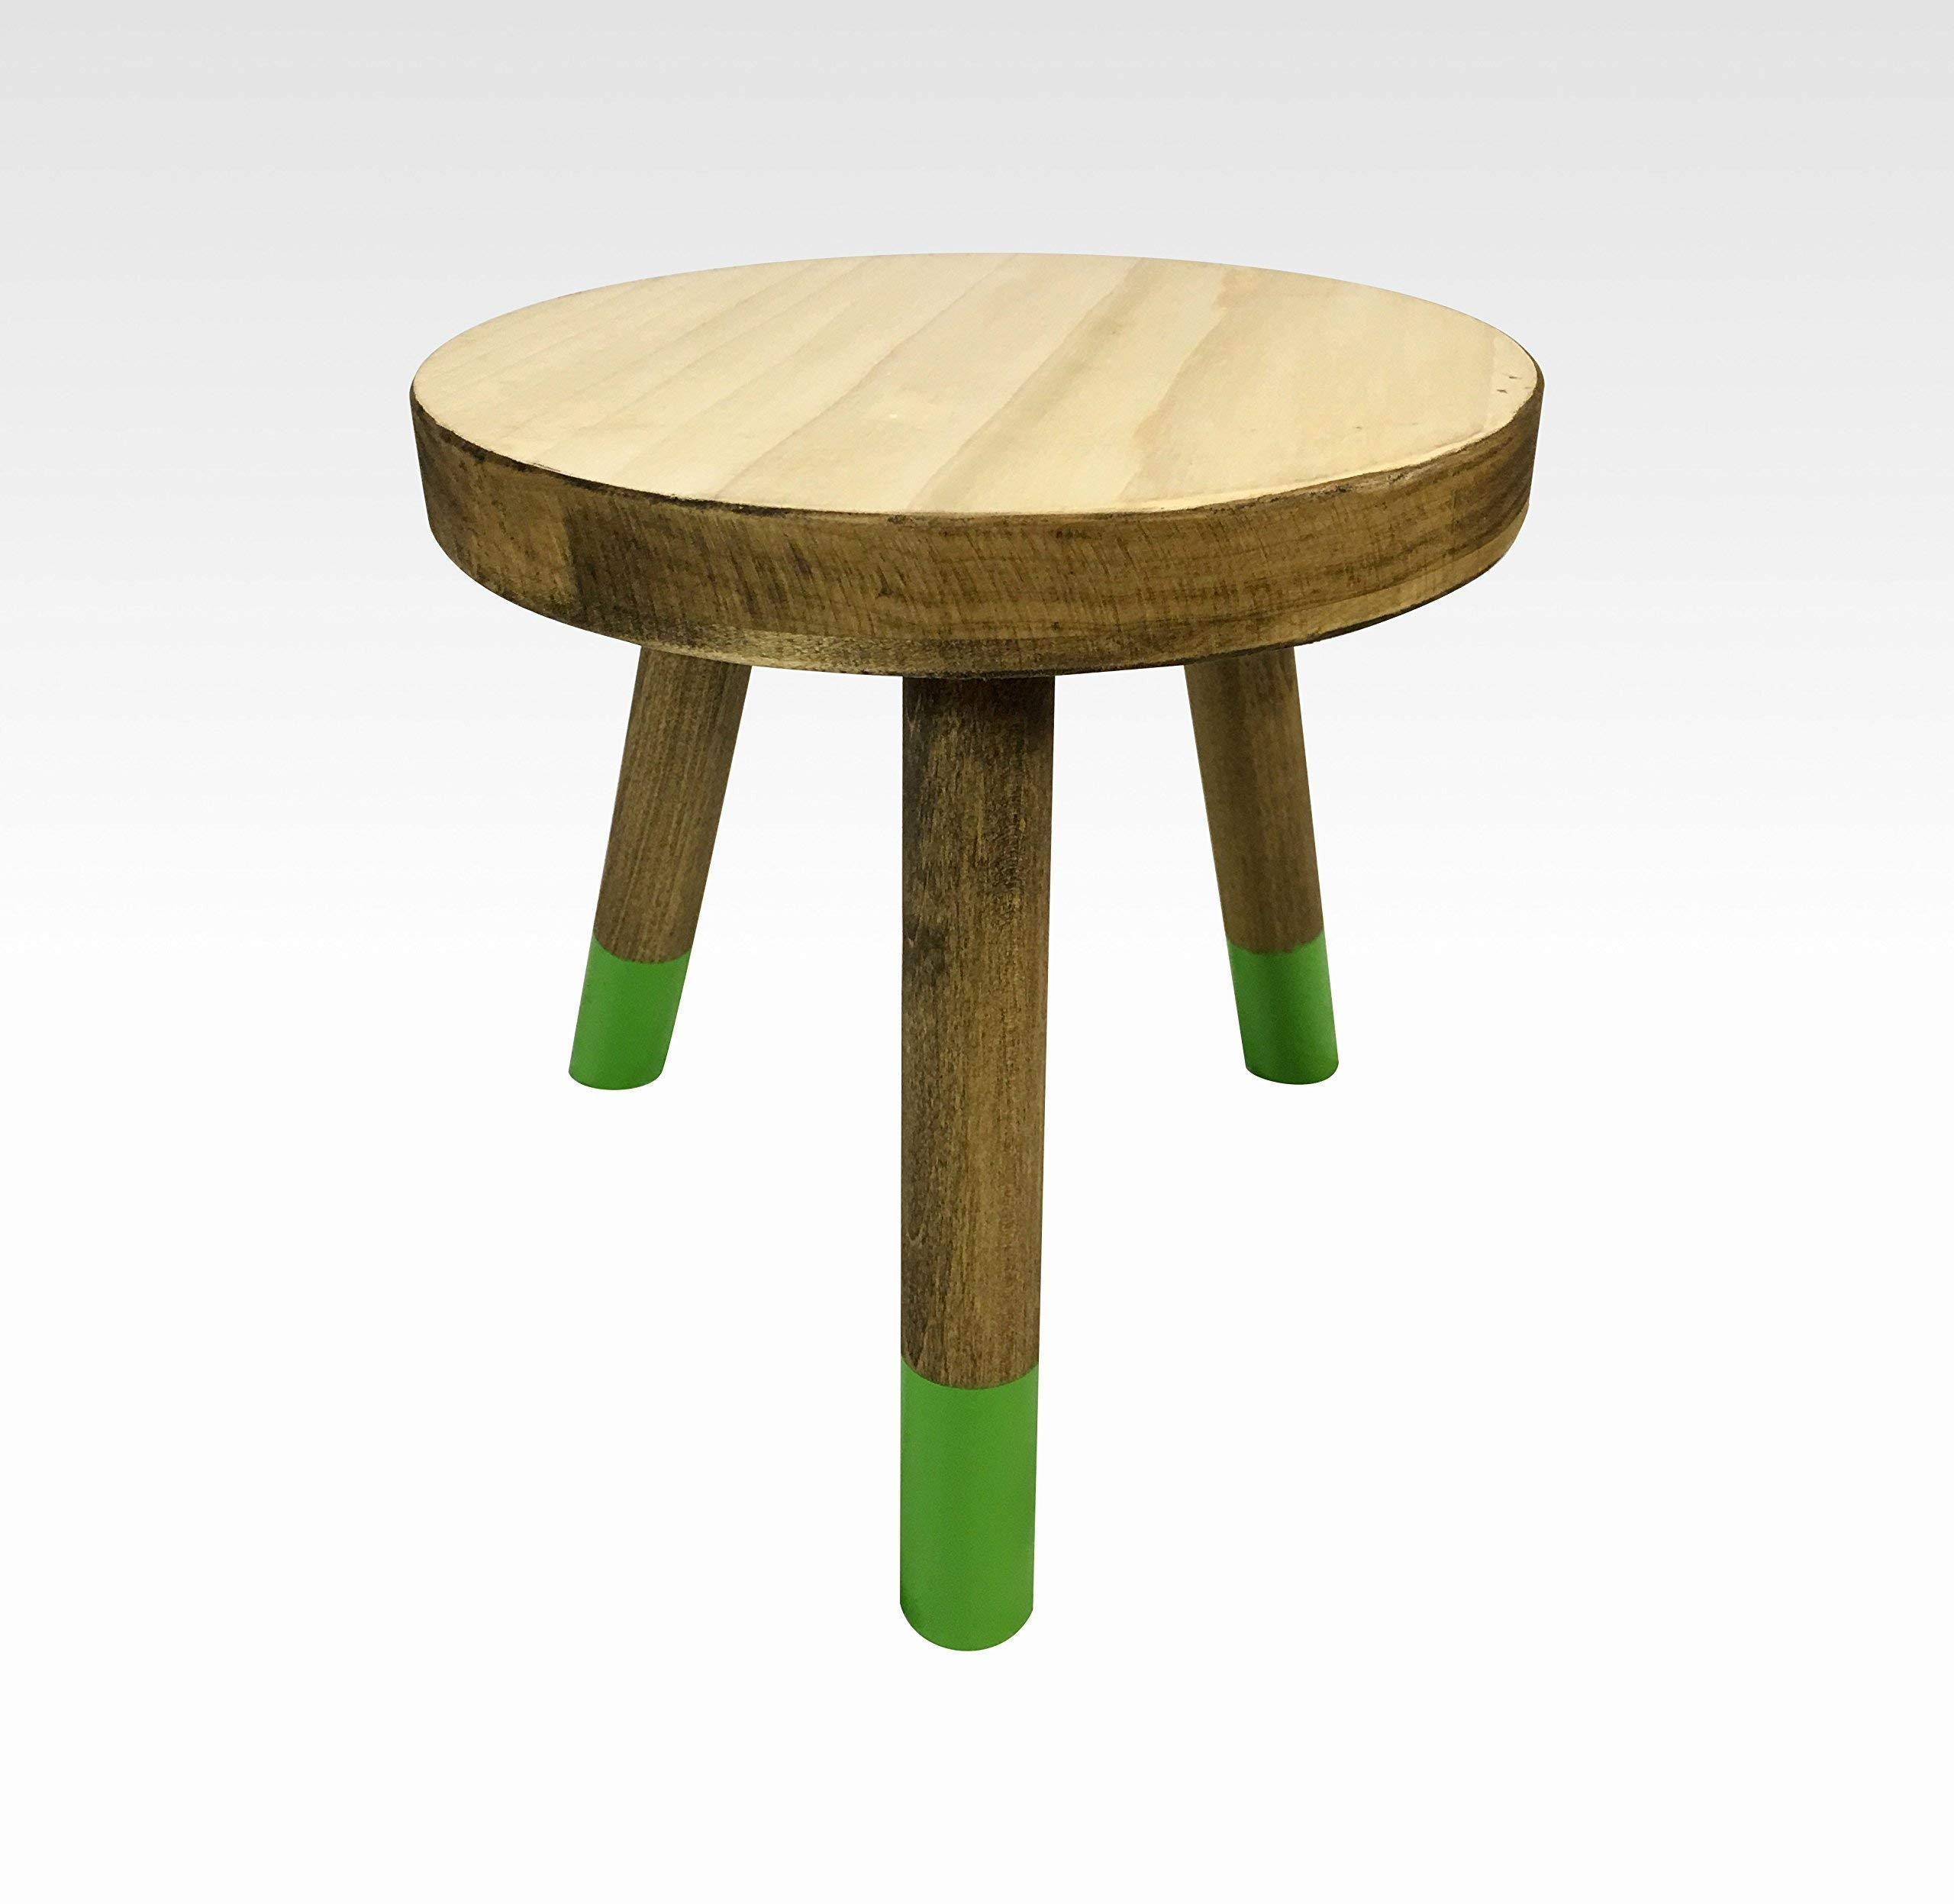 Modern Plant Stand Three Leg Stool by CW Furniture Wood Indoor Flower Pot Base Display Holder Solid Wooden Kids Chair Table Simple Minimalist Small by Candlewood Furniture